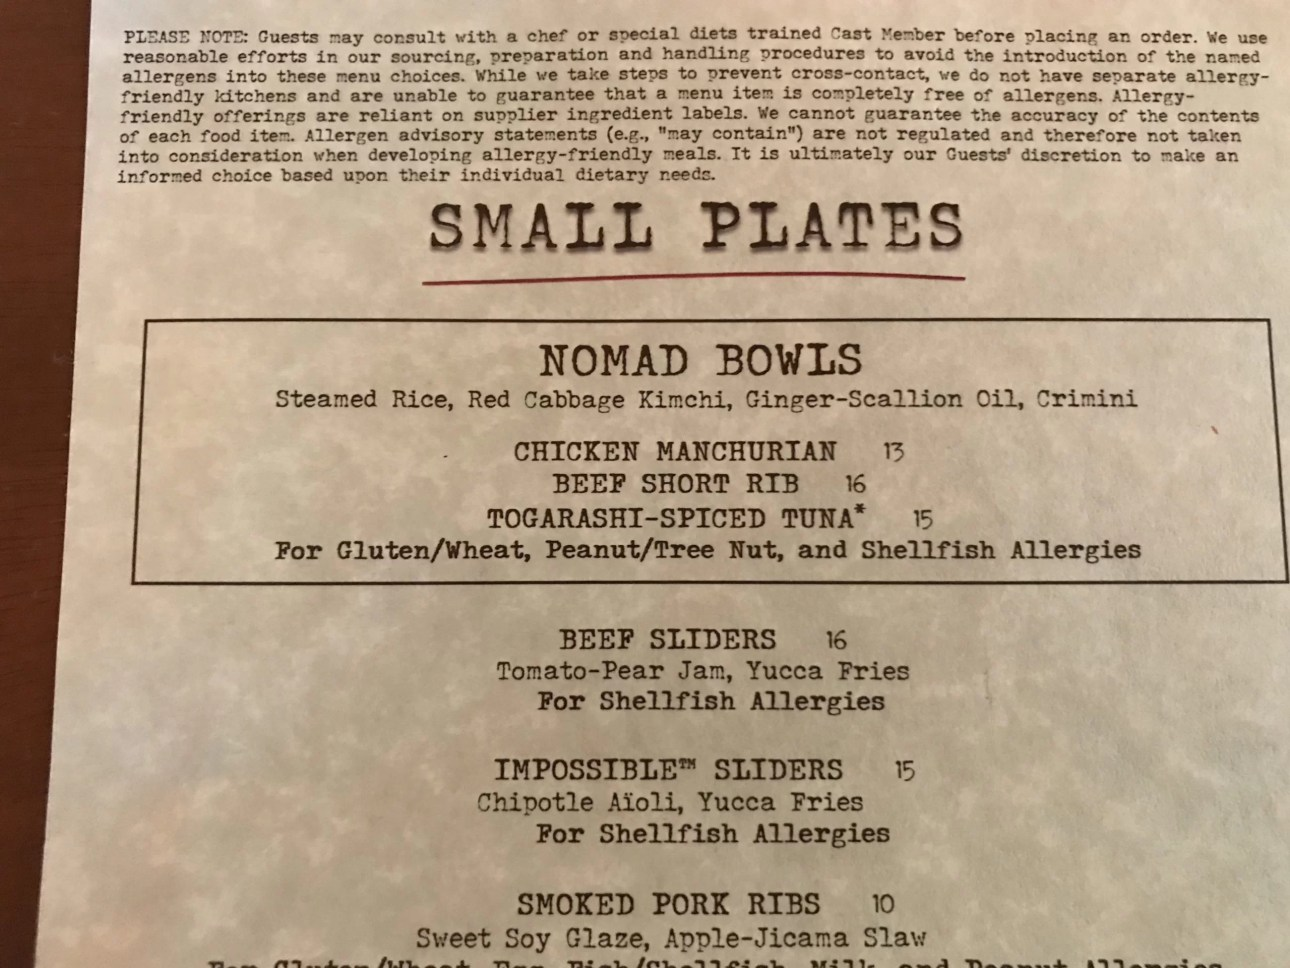 Top Allergy menu at Nomad's Lounge at Disney's Animal Kingdom